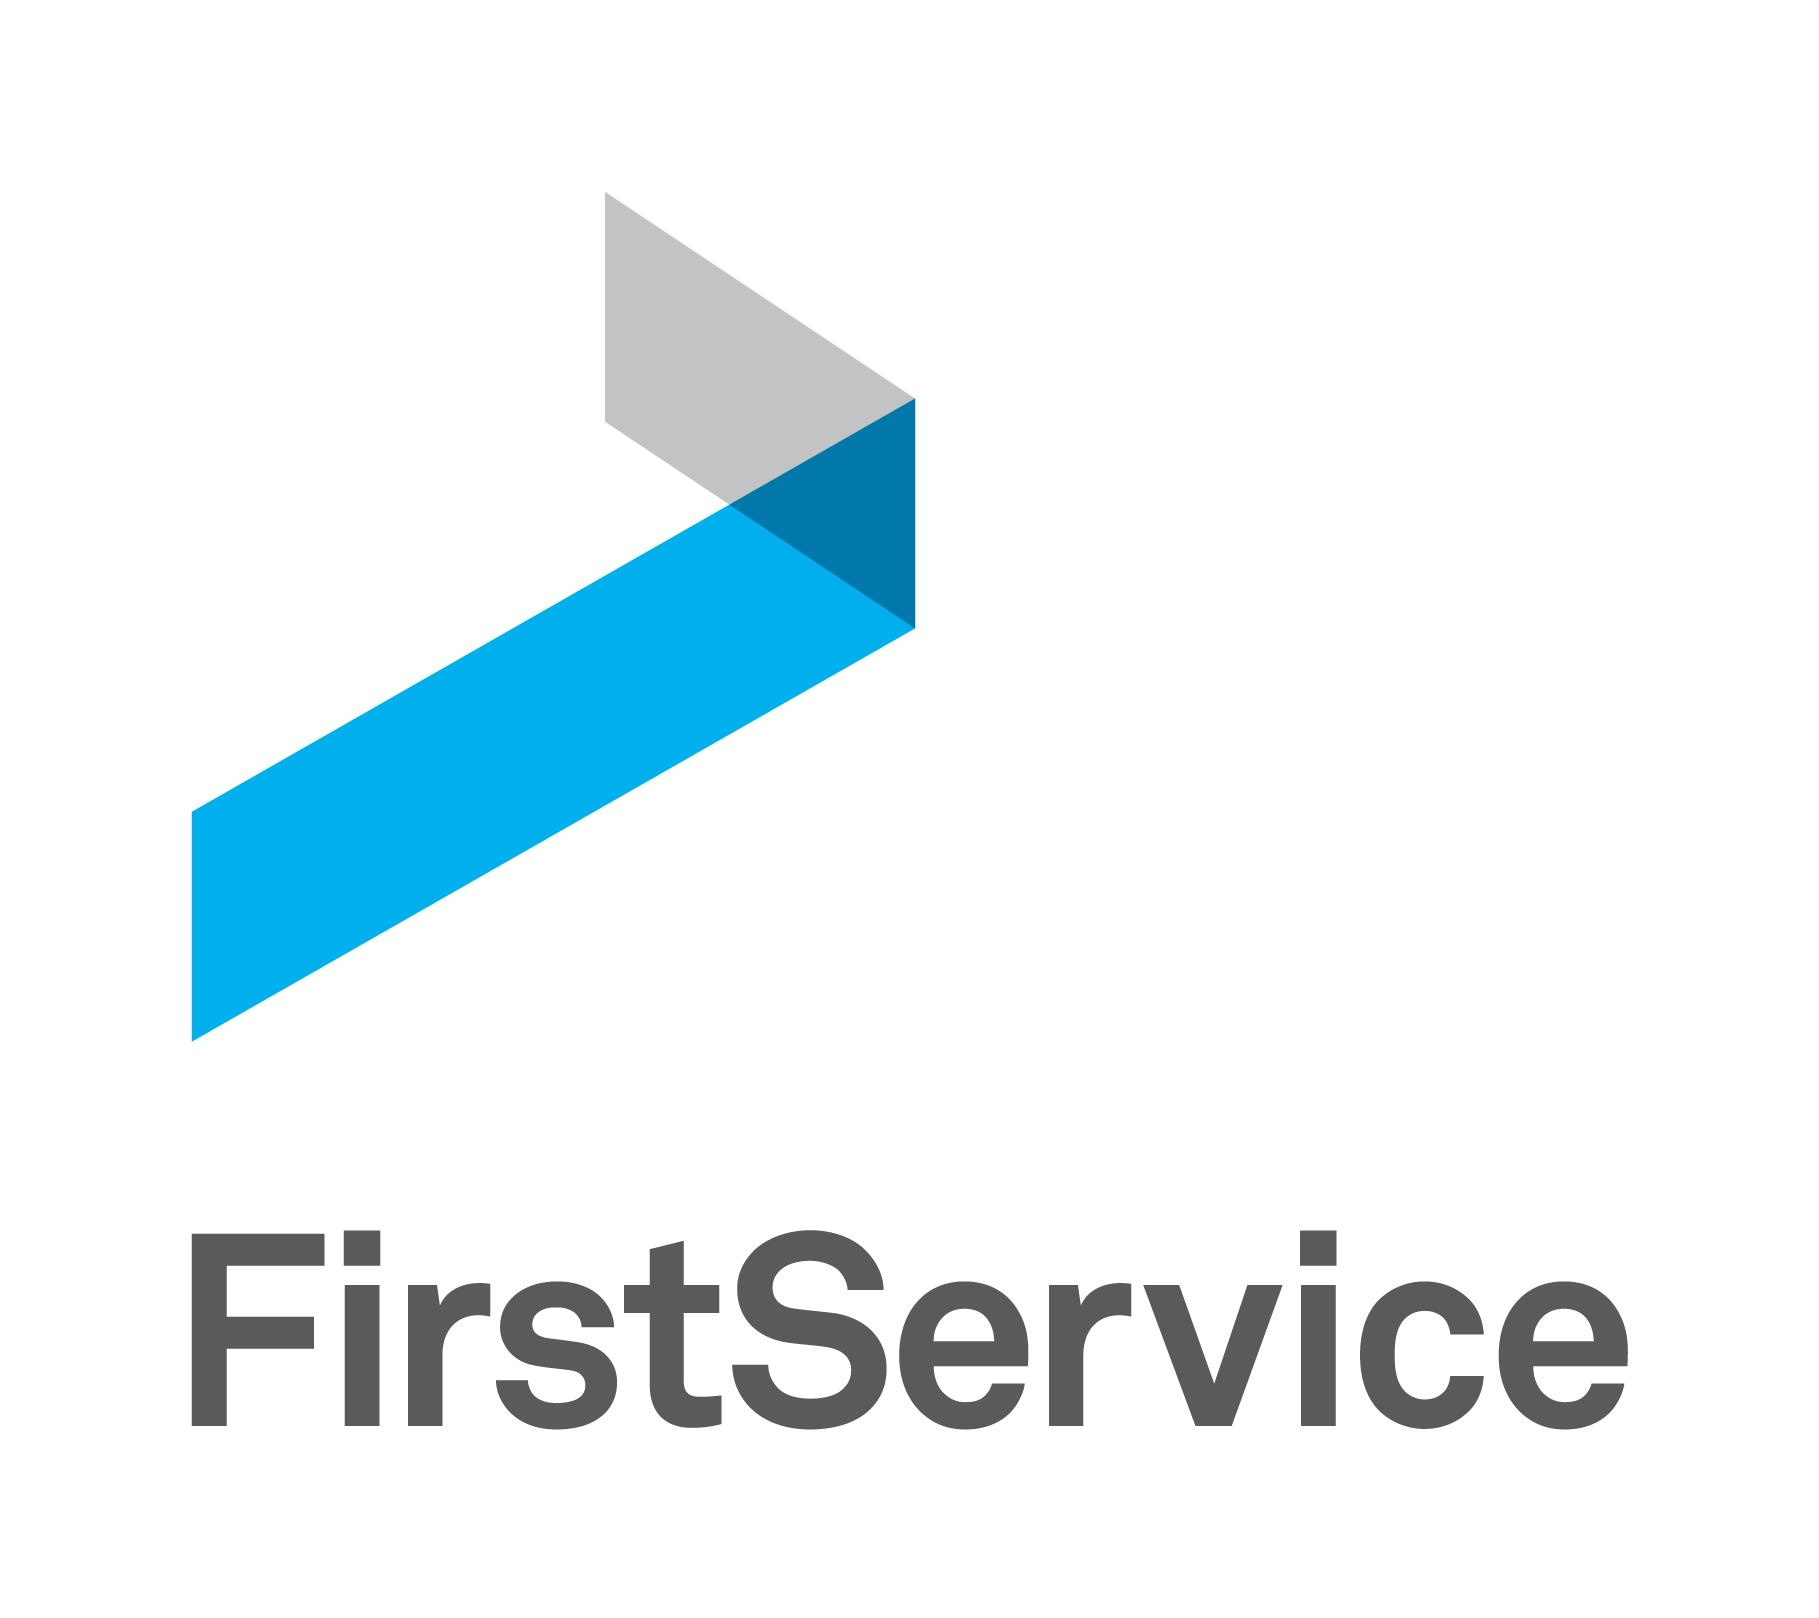 FirstService to Announce Second Quarter Results on July 23, 2020